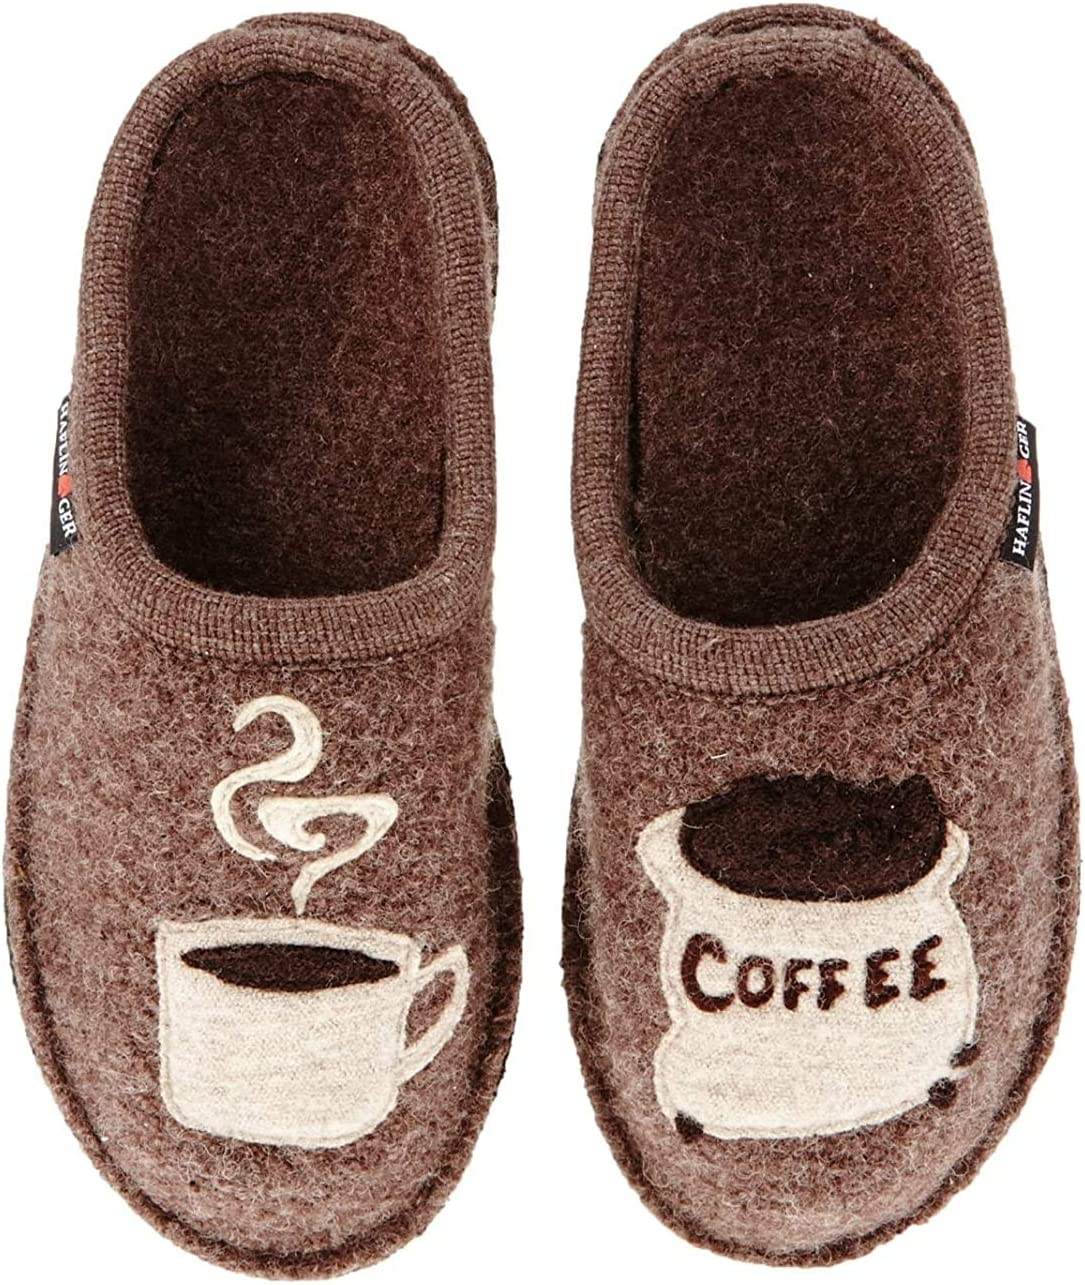 Haflinger Men's 313039 Slipper, Earth, 9